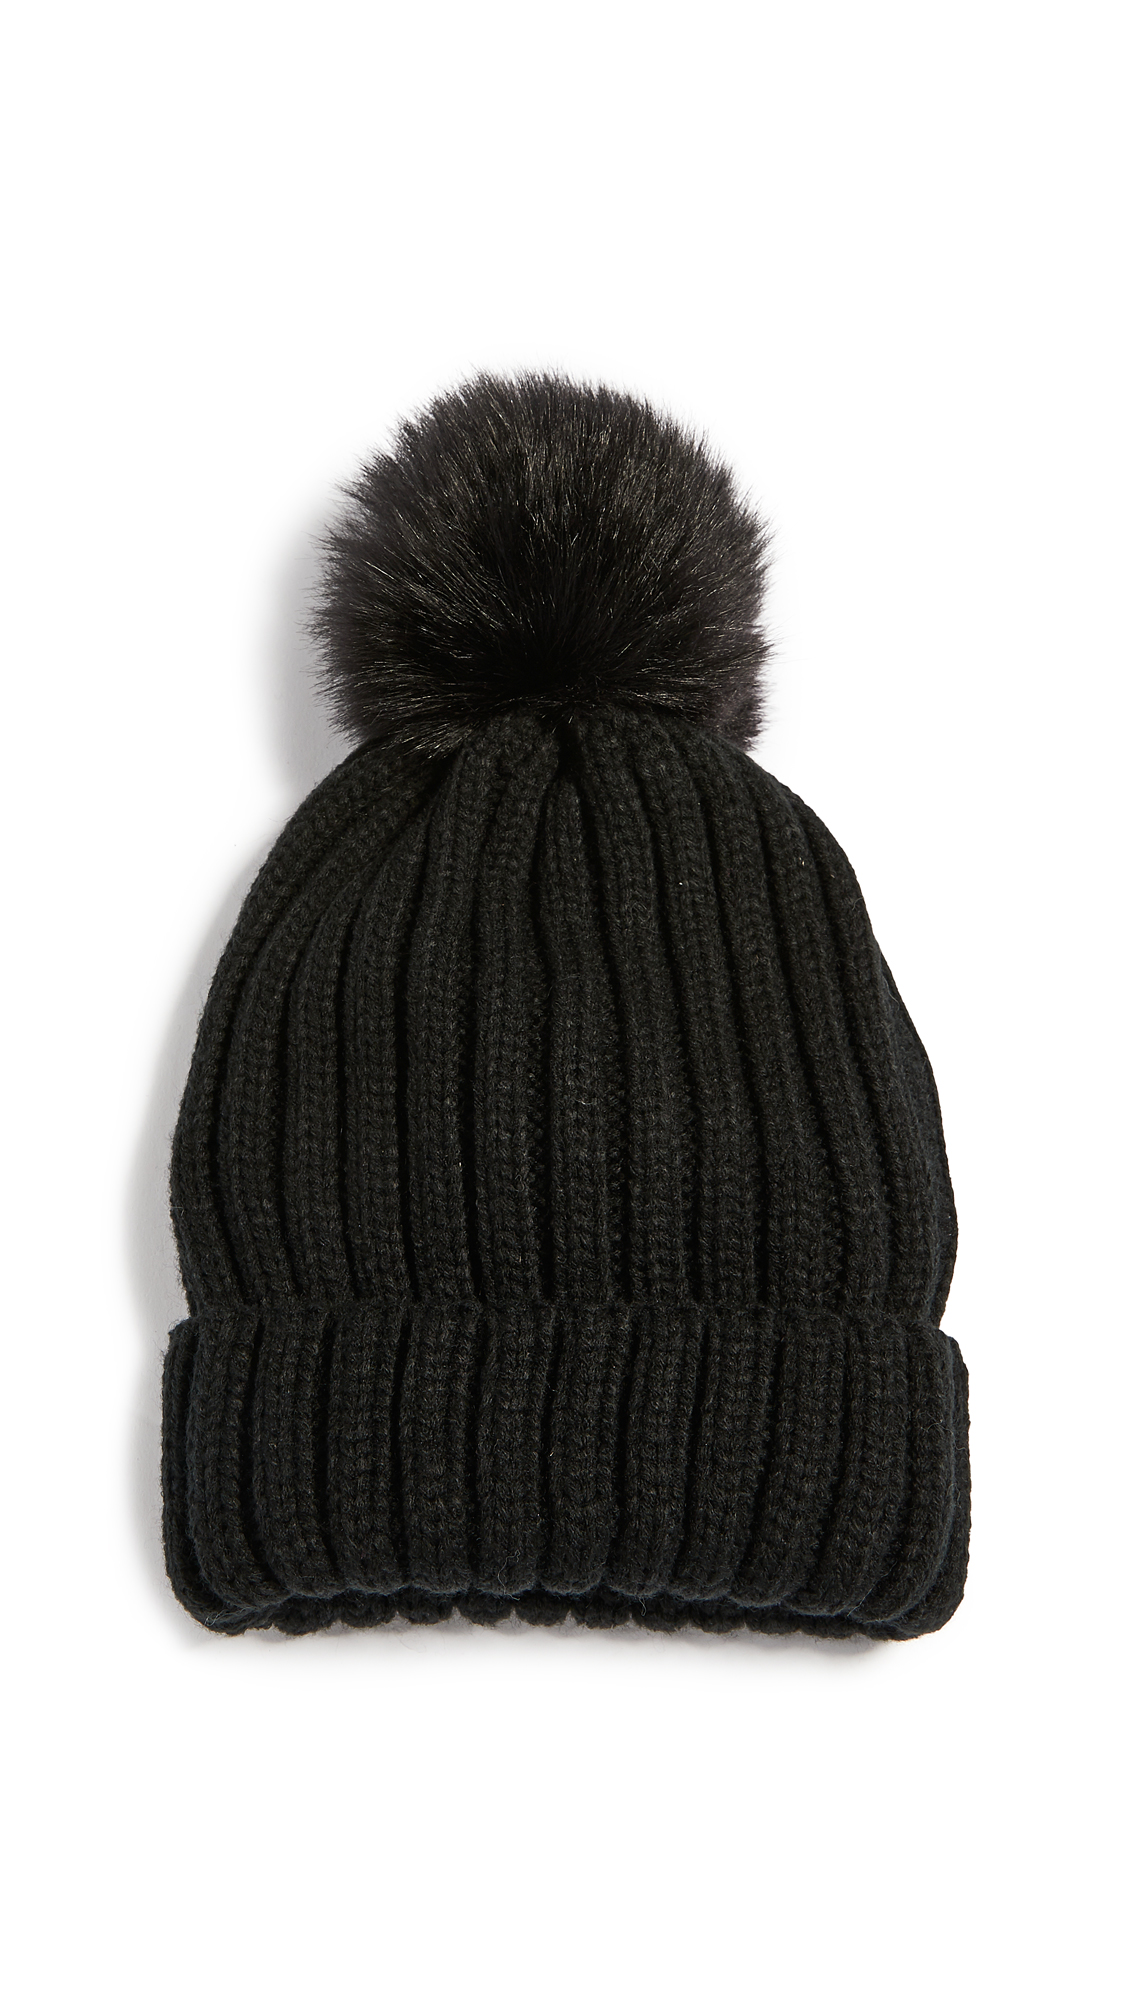 Adrienne Landau Knit Hat with Pom